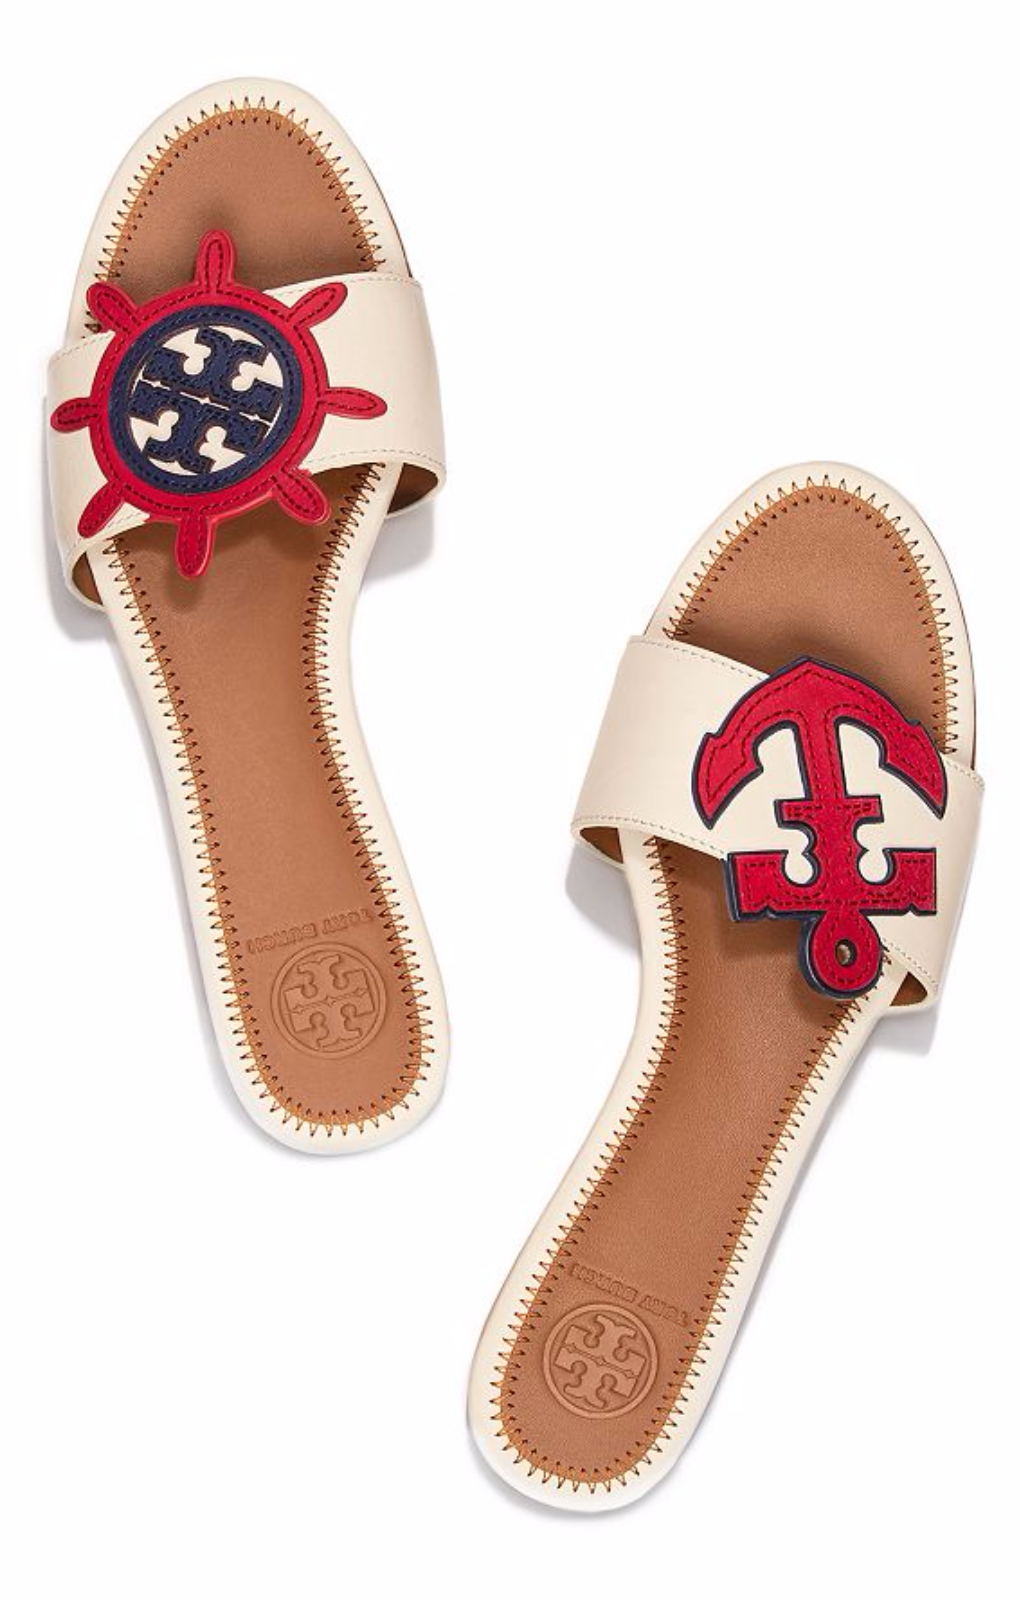 Visit Tory Burch to shop for Maritime Mismatched Slide and more Womens  Sandals. Find designer shoes, handbags, clothing & more of this season's  latest ...